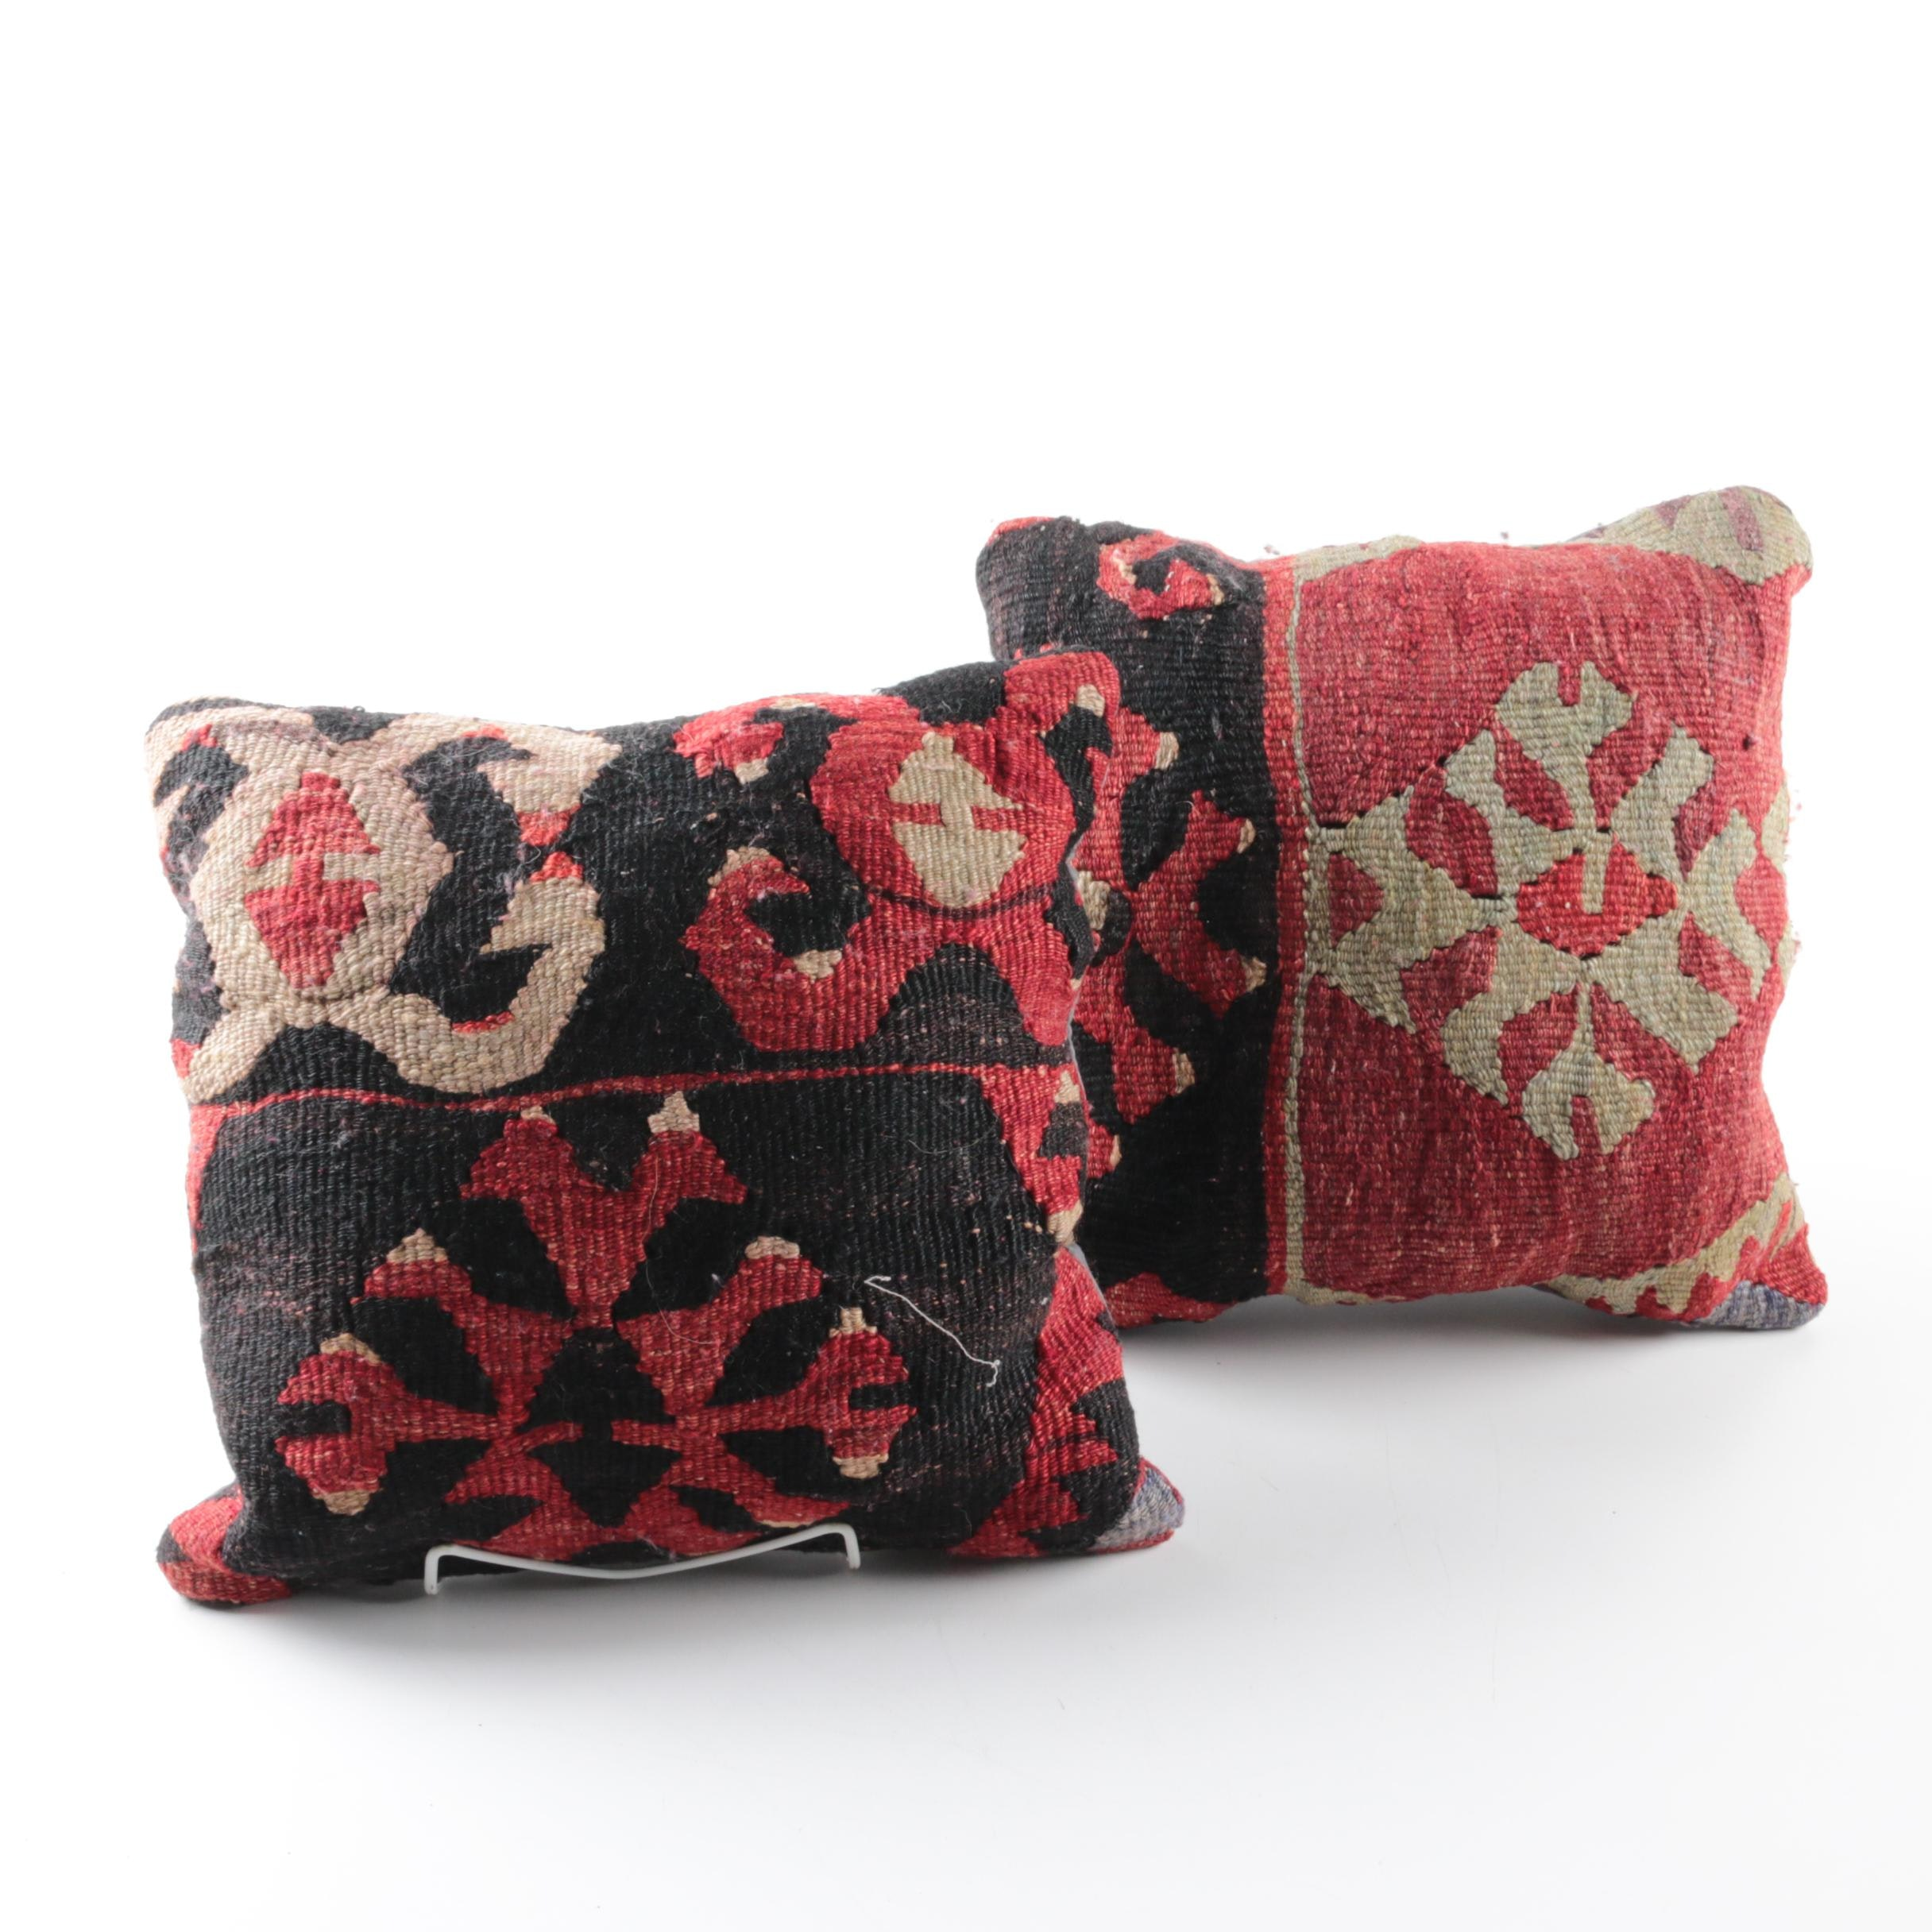 Pair of Handwoven Pillows